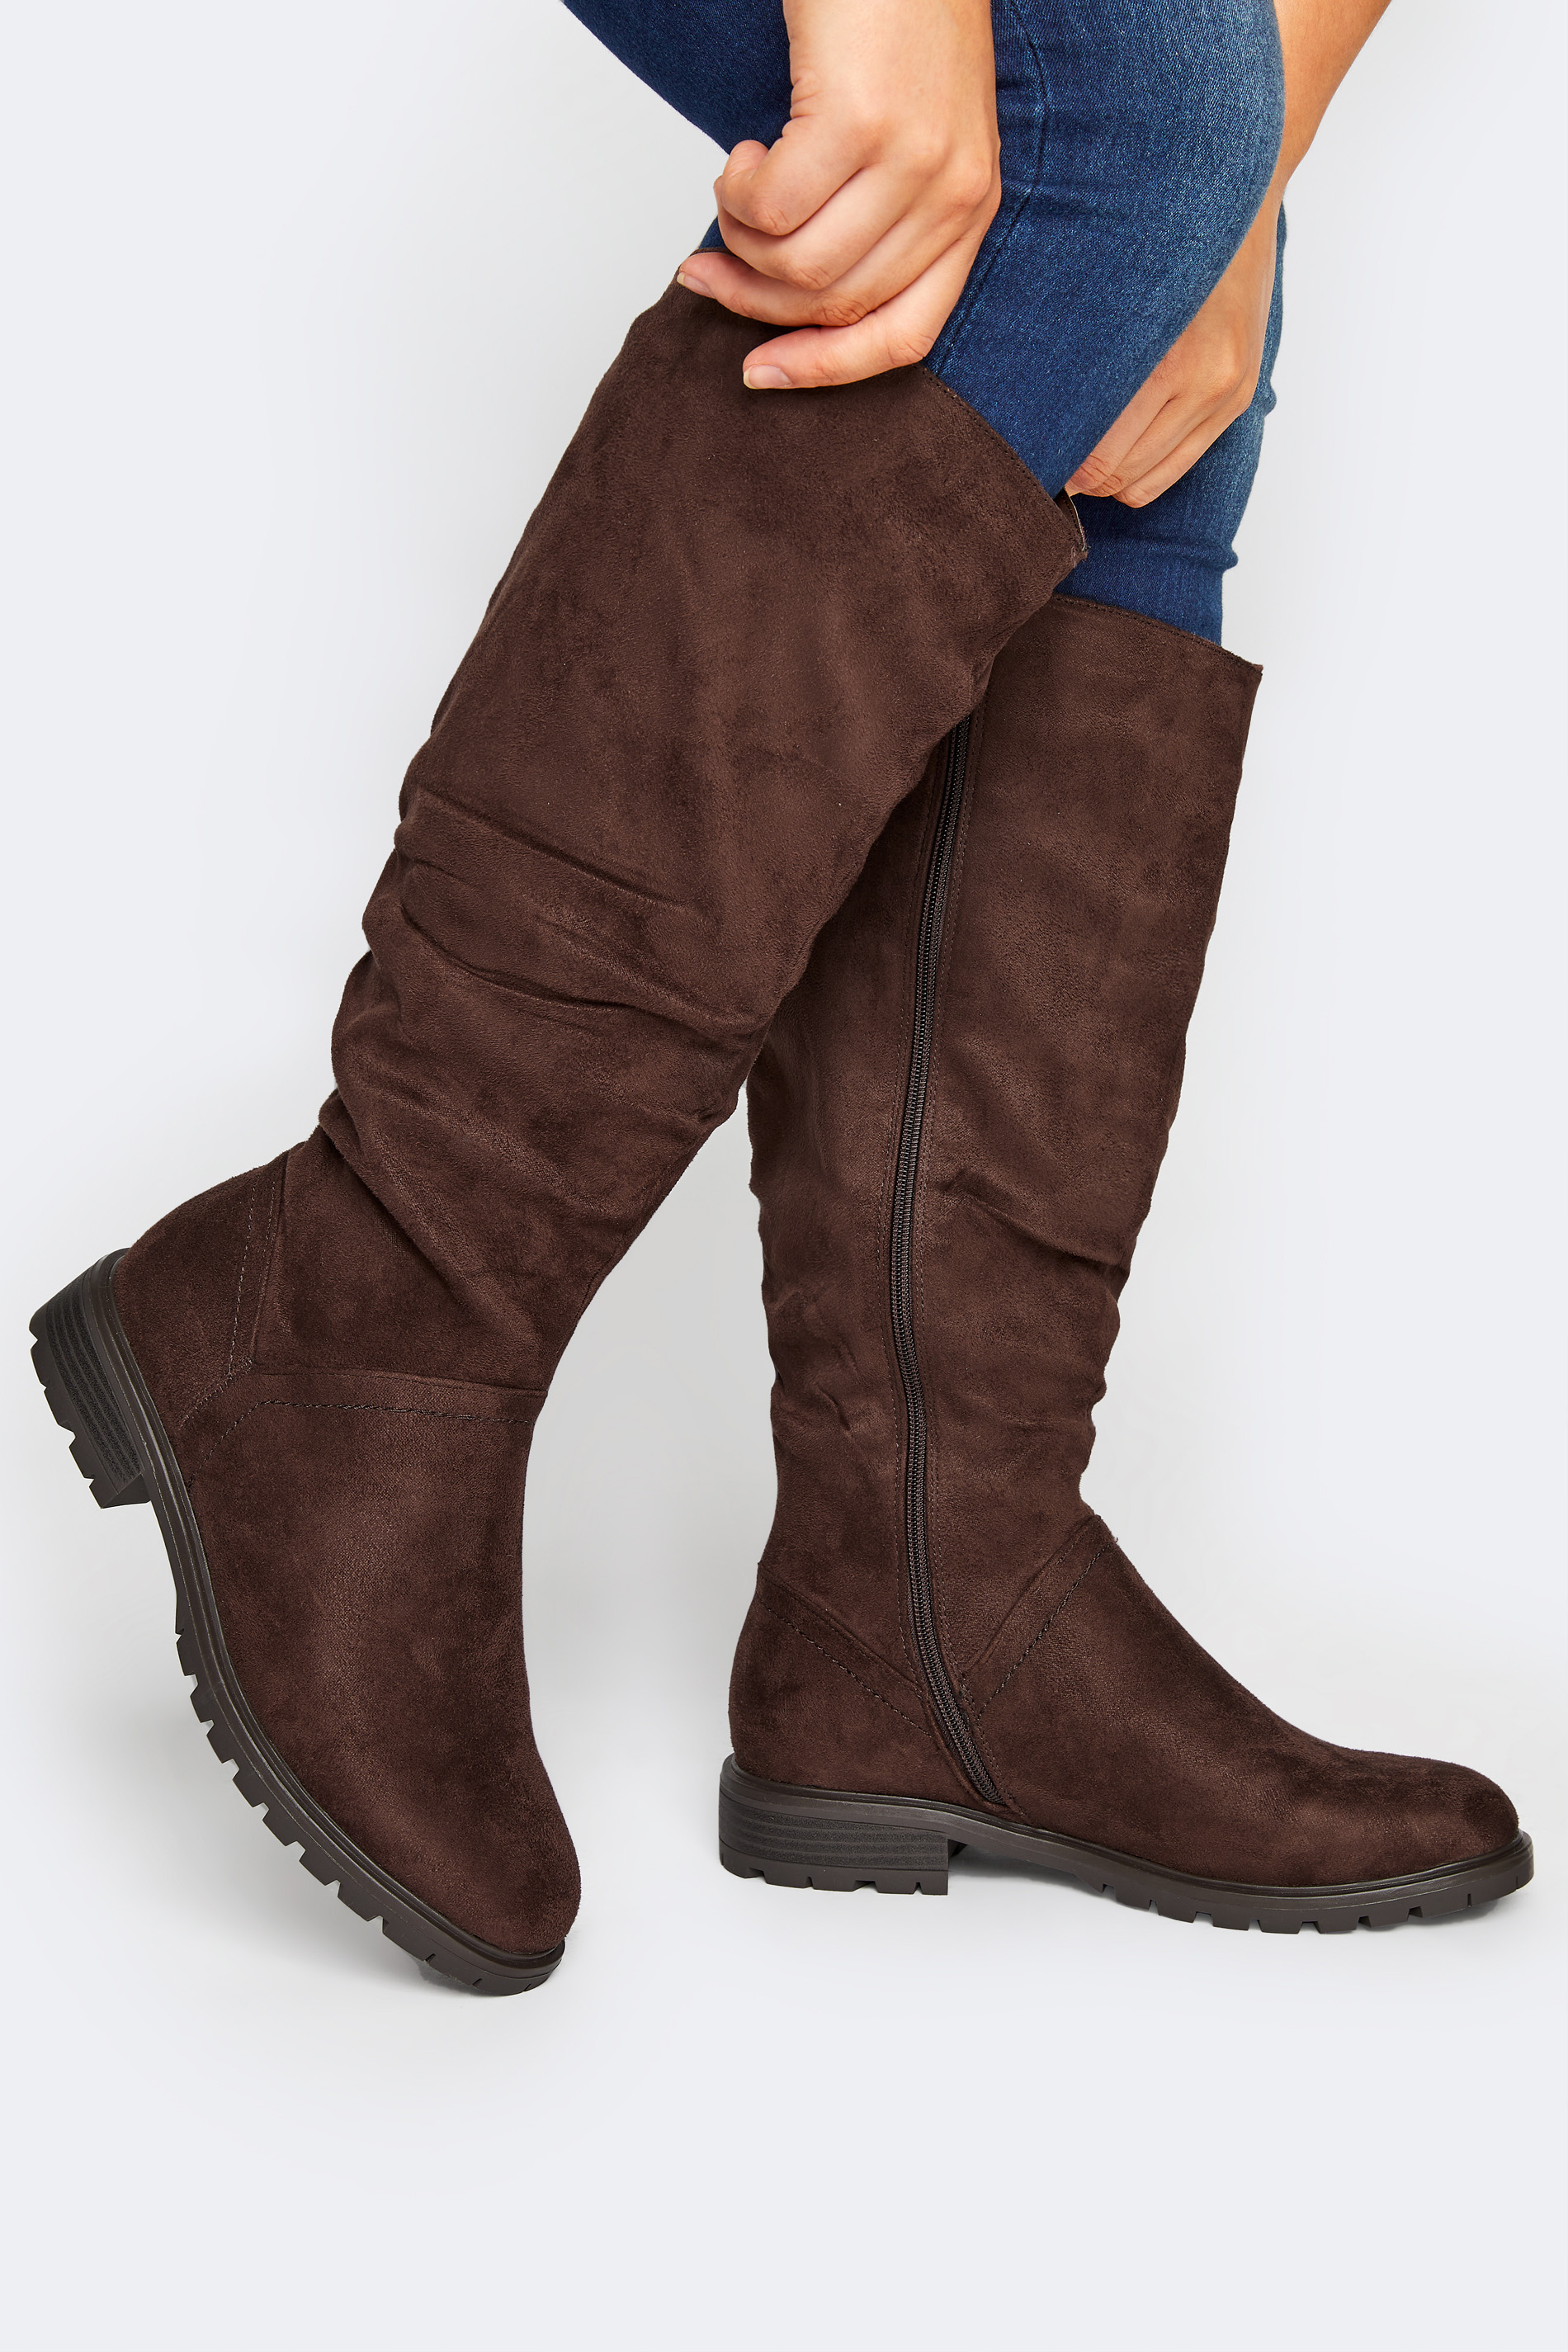 Chocolate Brown Ruched Cleated Boots In Regular Fit_M.jpg